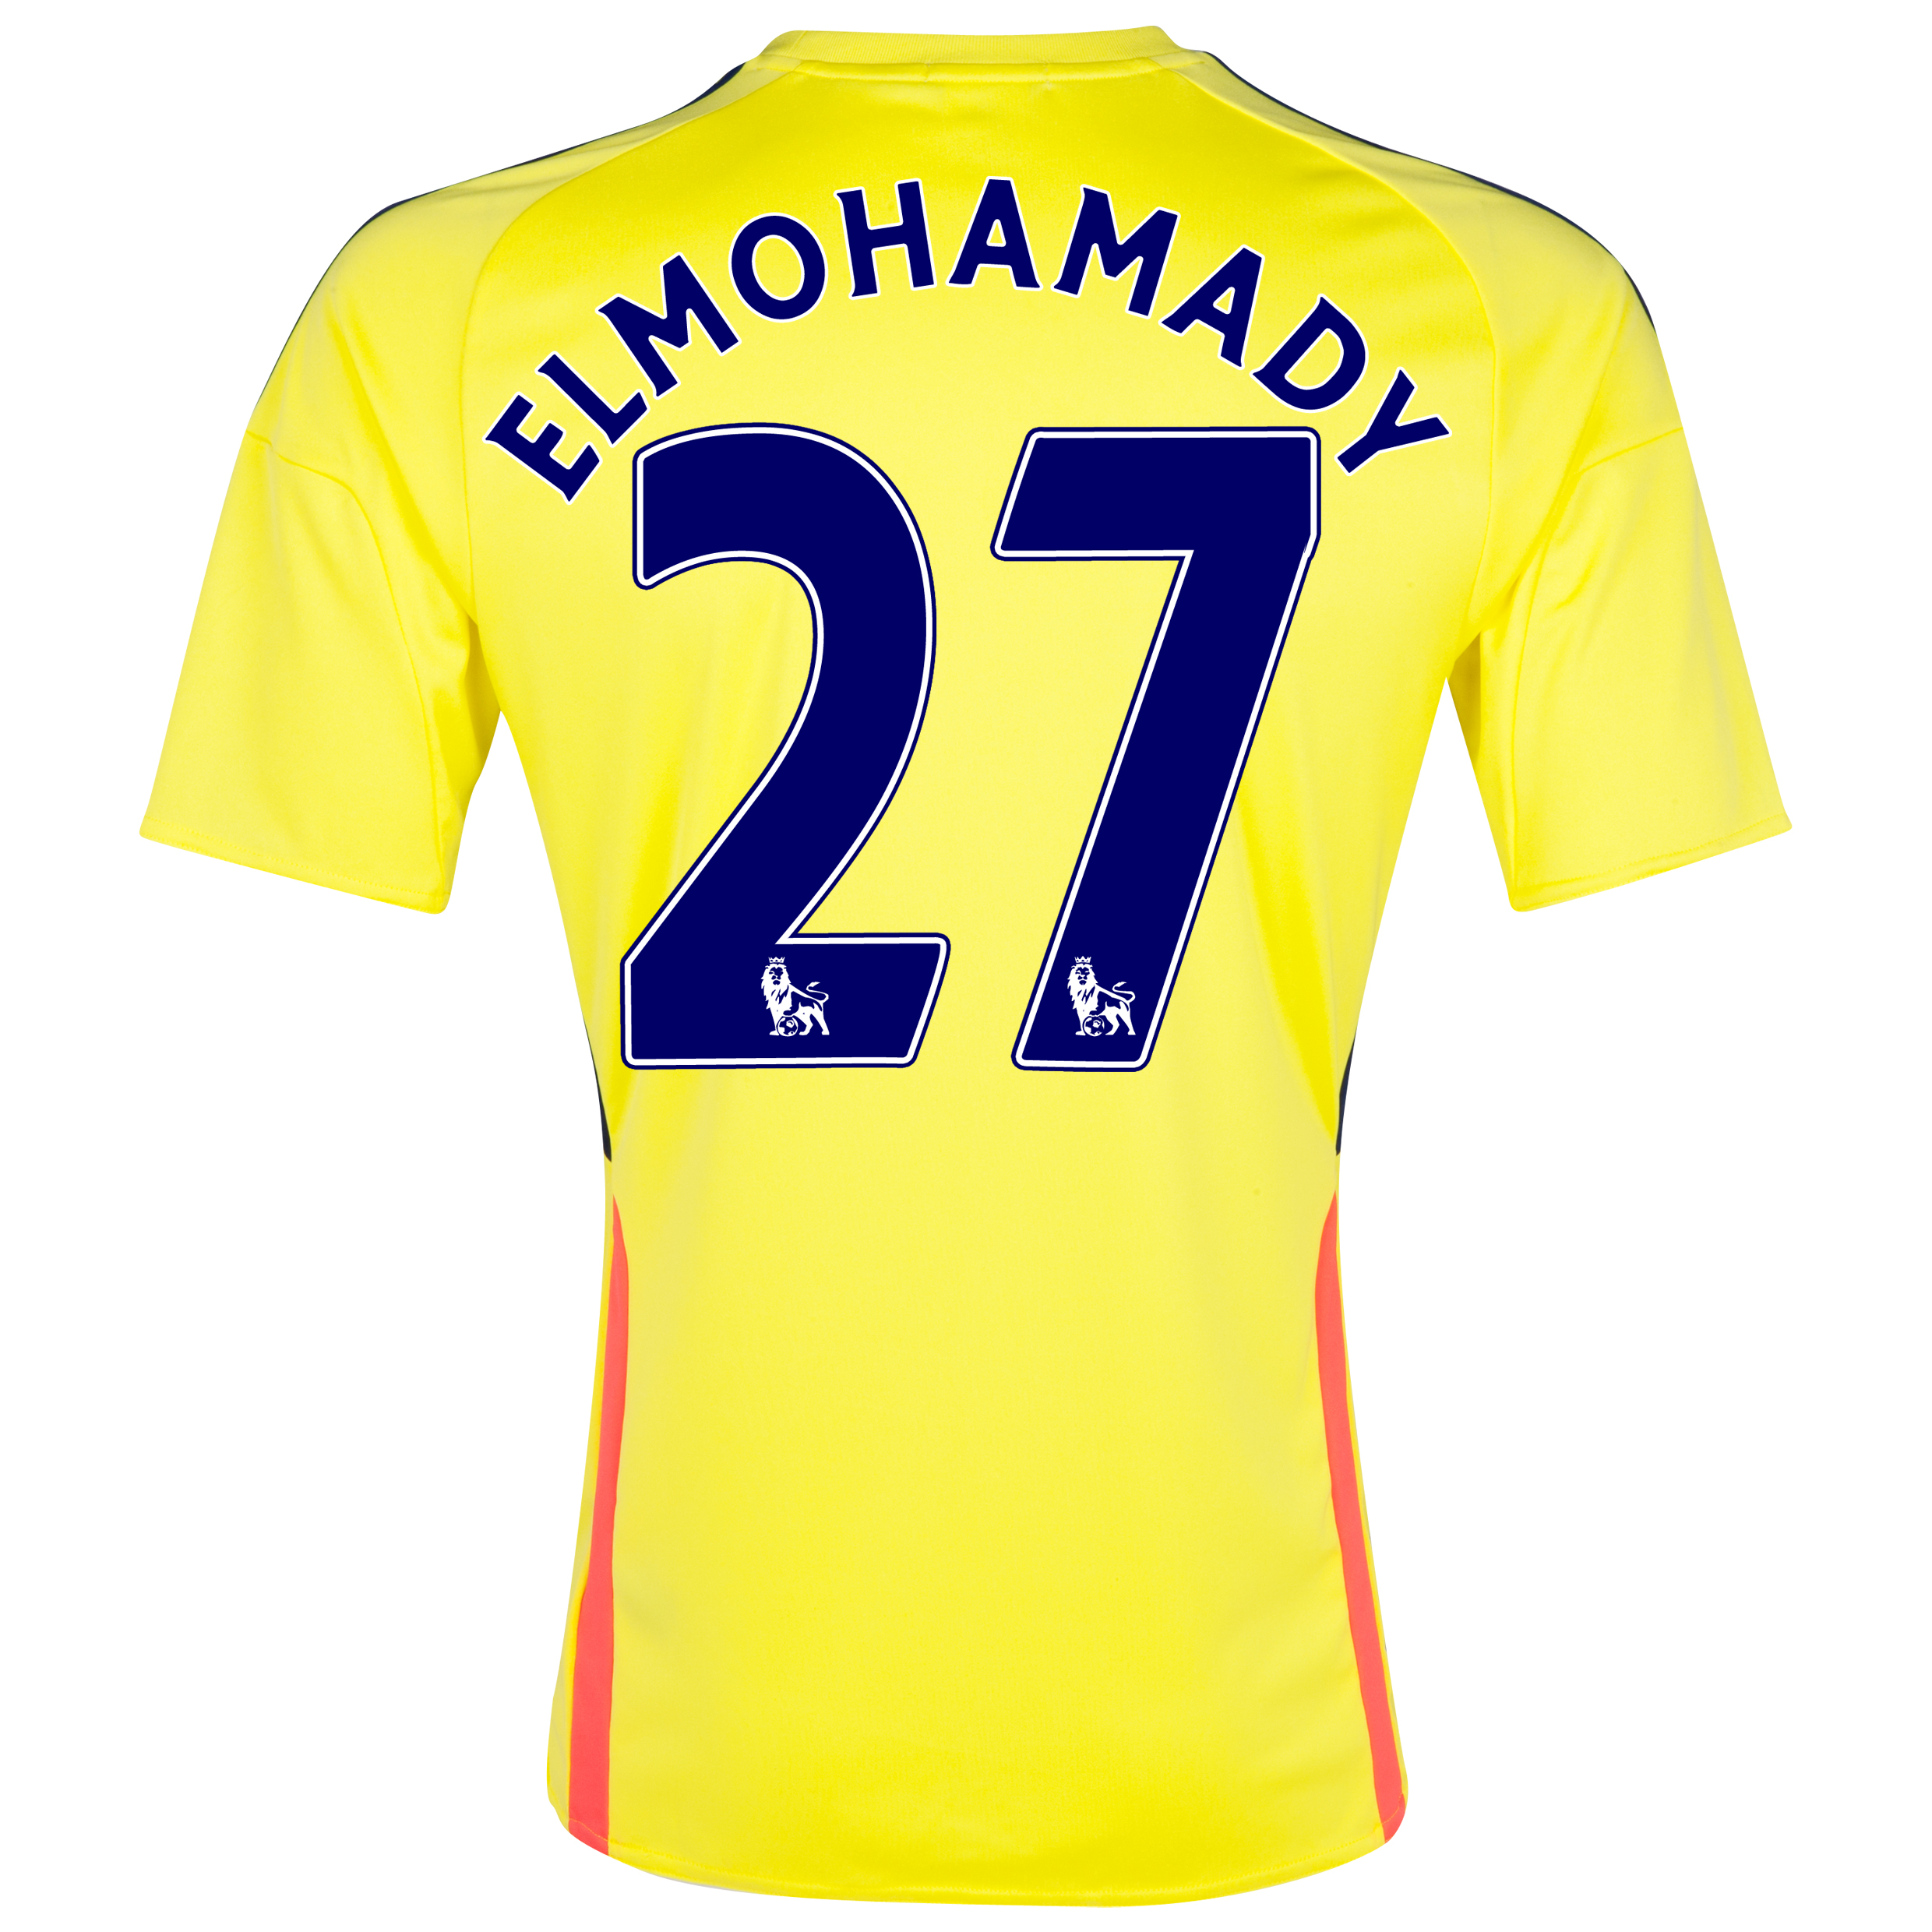 Sunderland Away Shirt 2013/14 with Elmohamady 27 printing